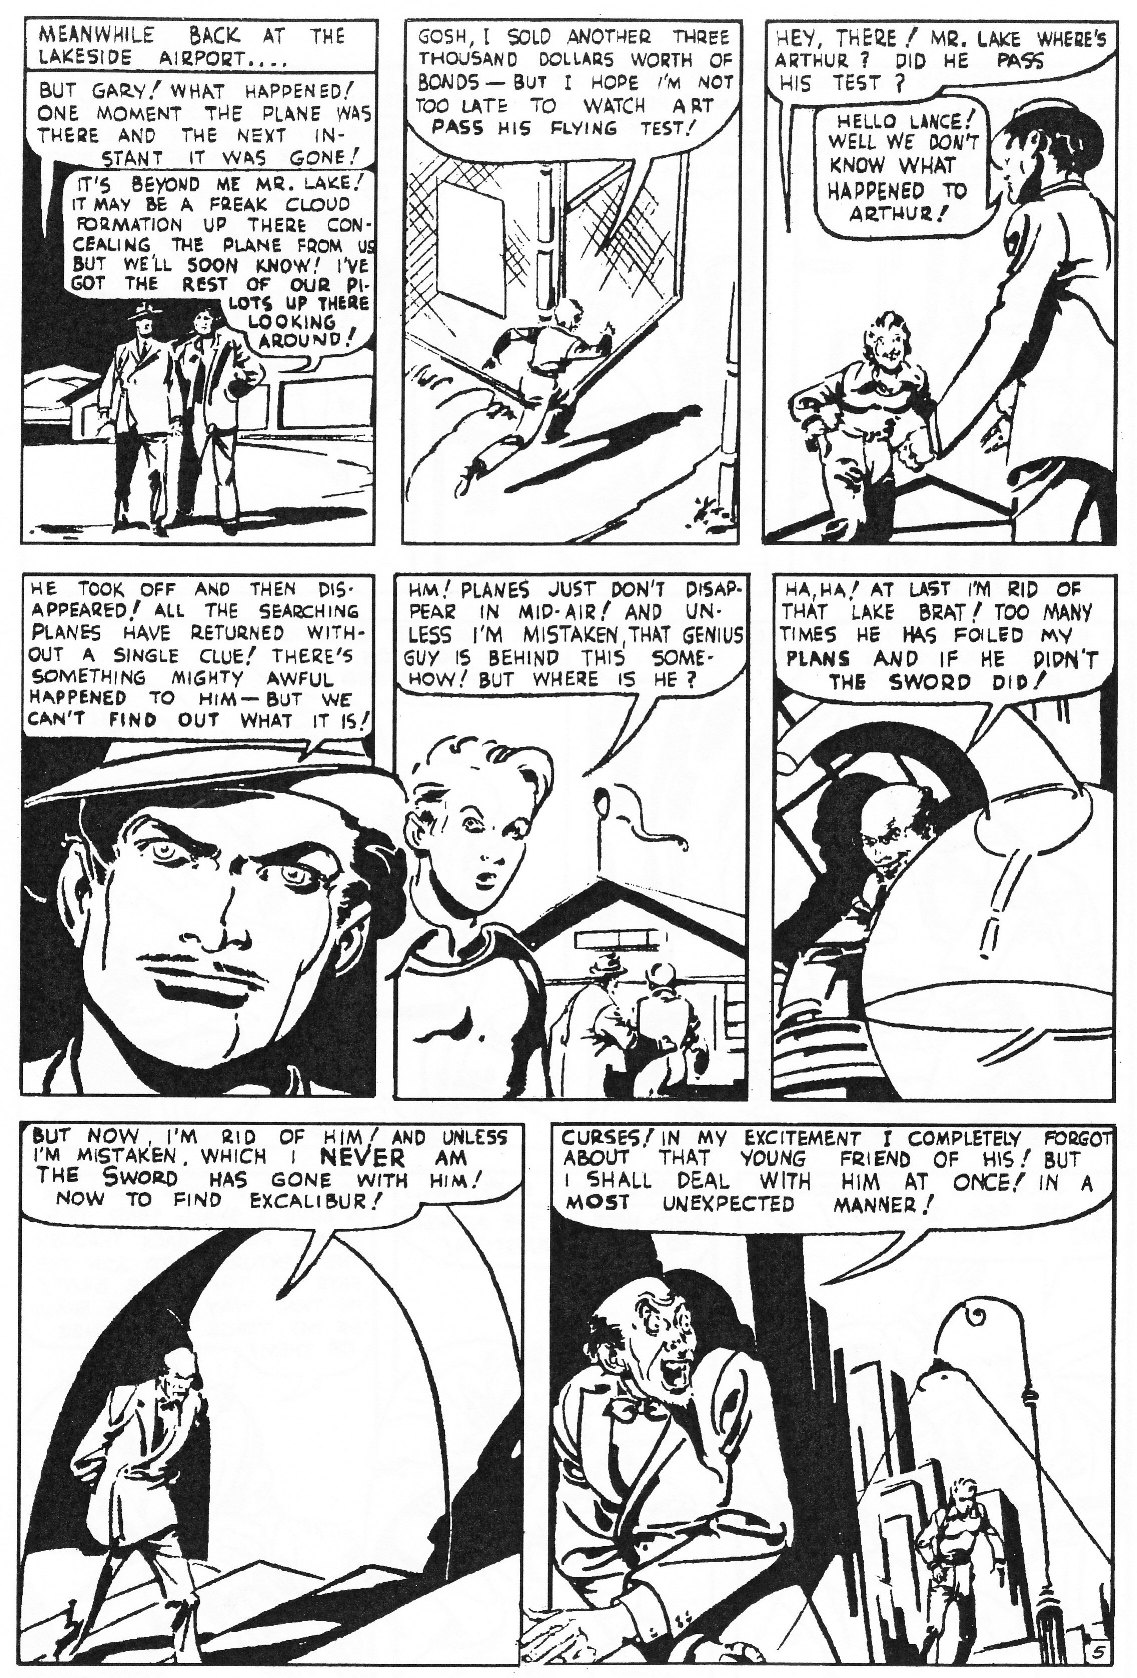 Read online Men of Mystery Comics comic -  Issue #81 - 135